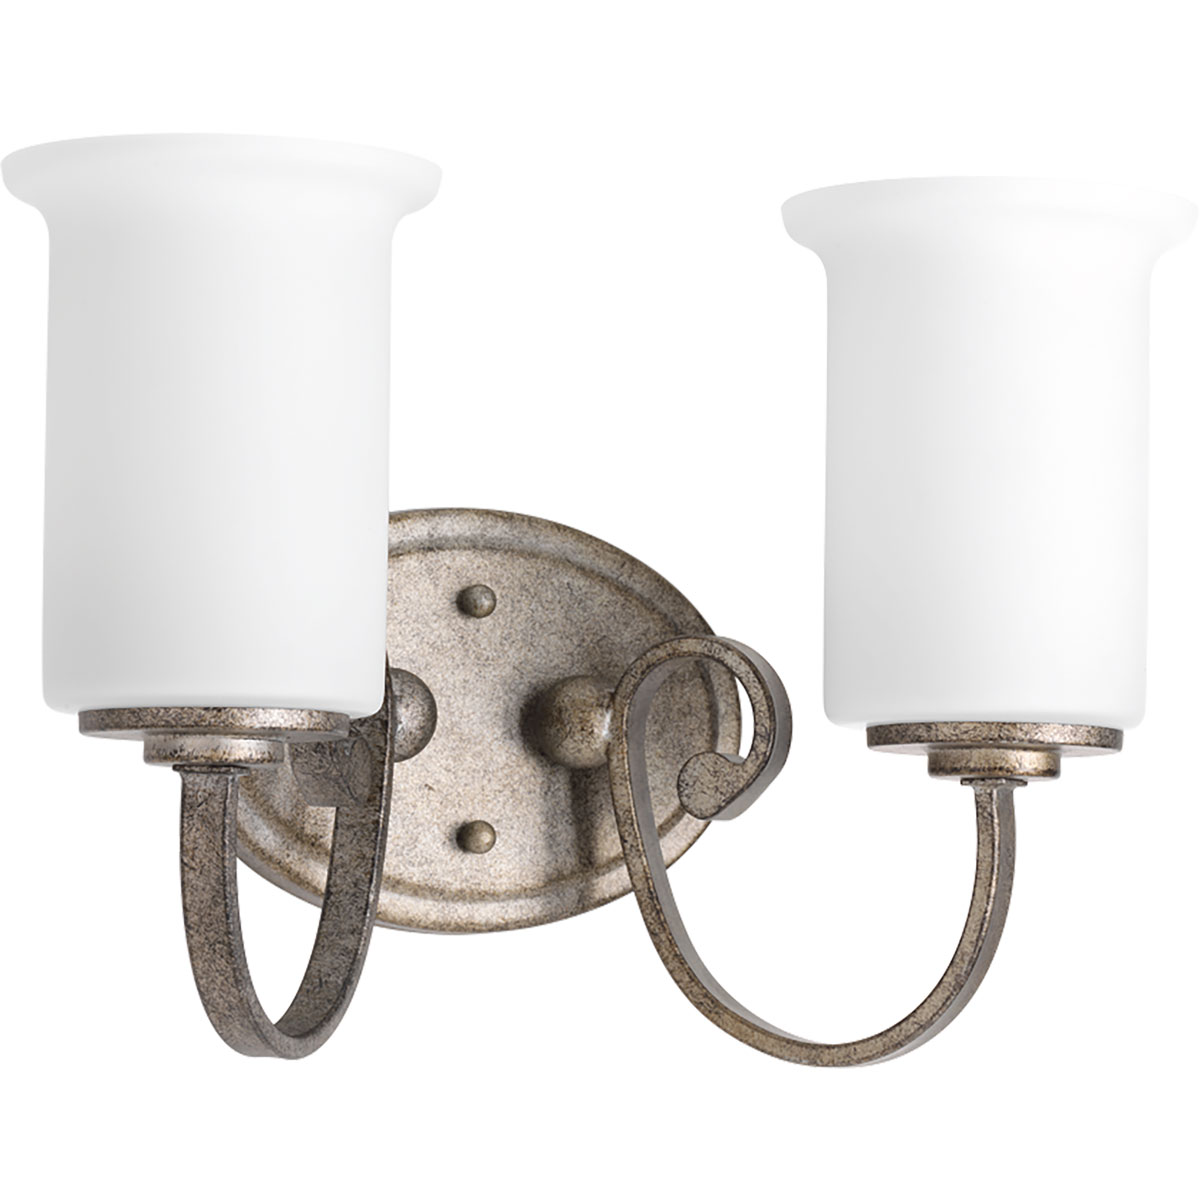 Wall Bracket Light Fixtures : Progress Lighting (P2133-144) Stroll 2-Light Wall Bracket Fixture